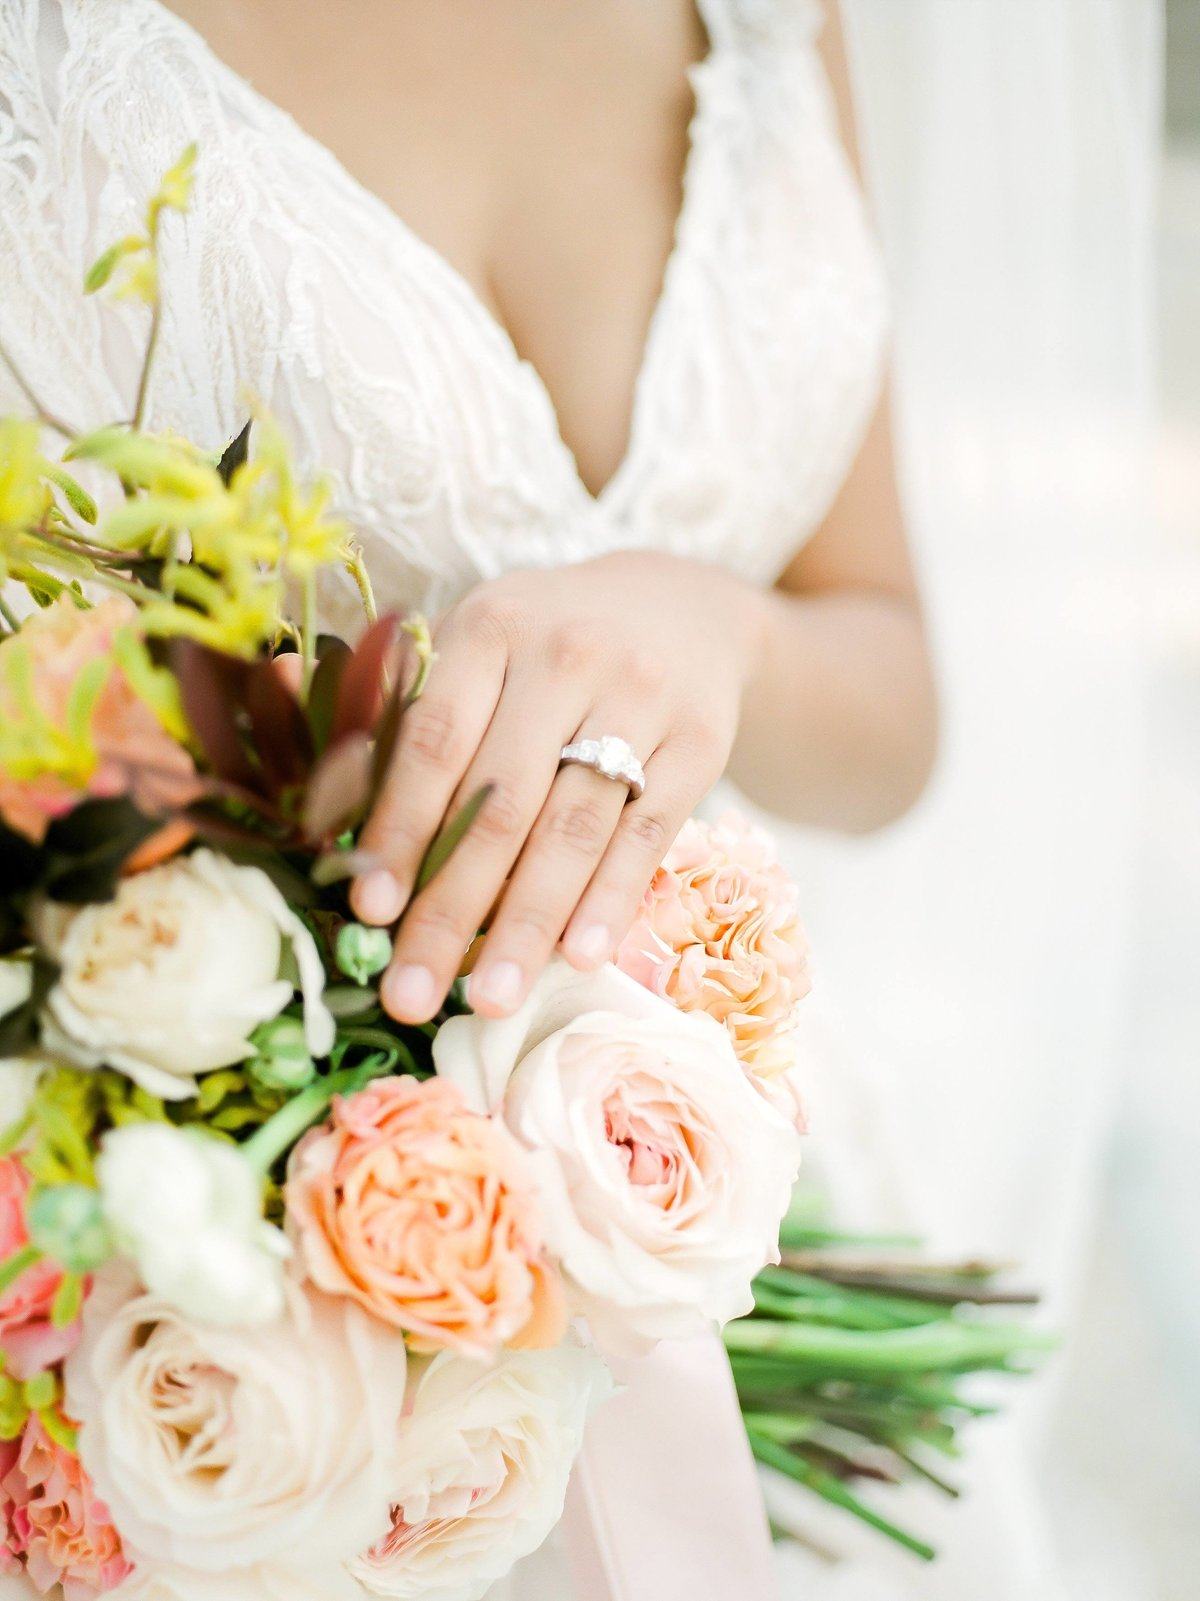 Ring Shoot on Bouquet